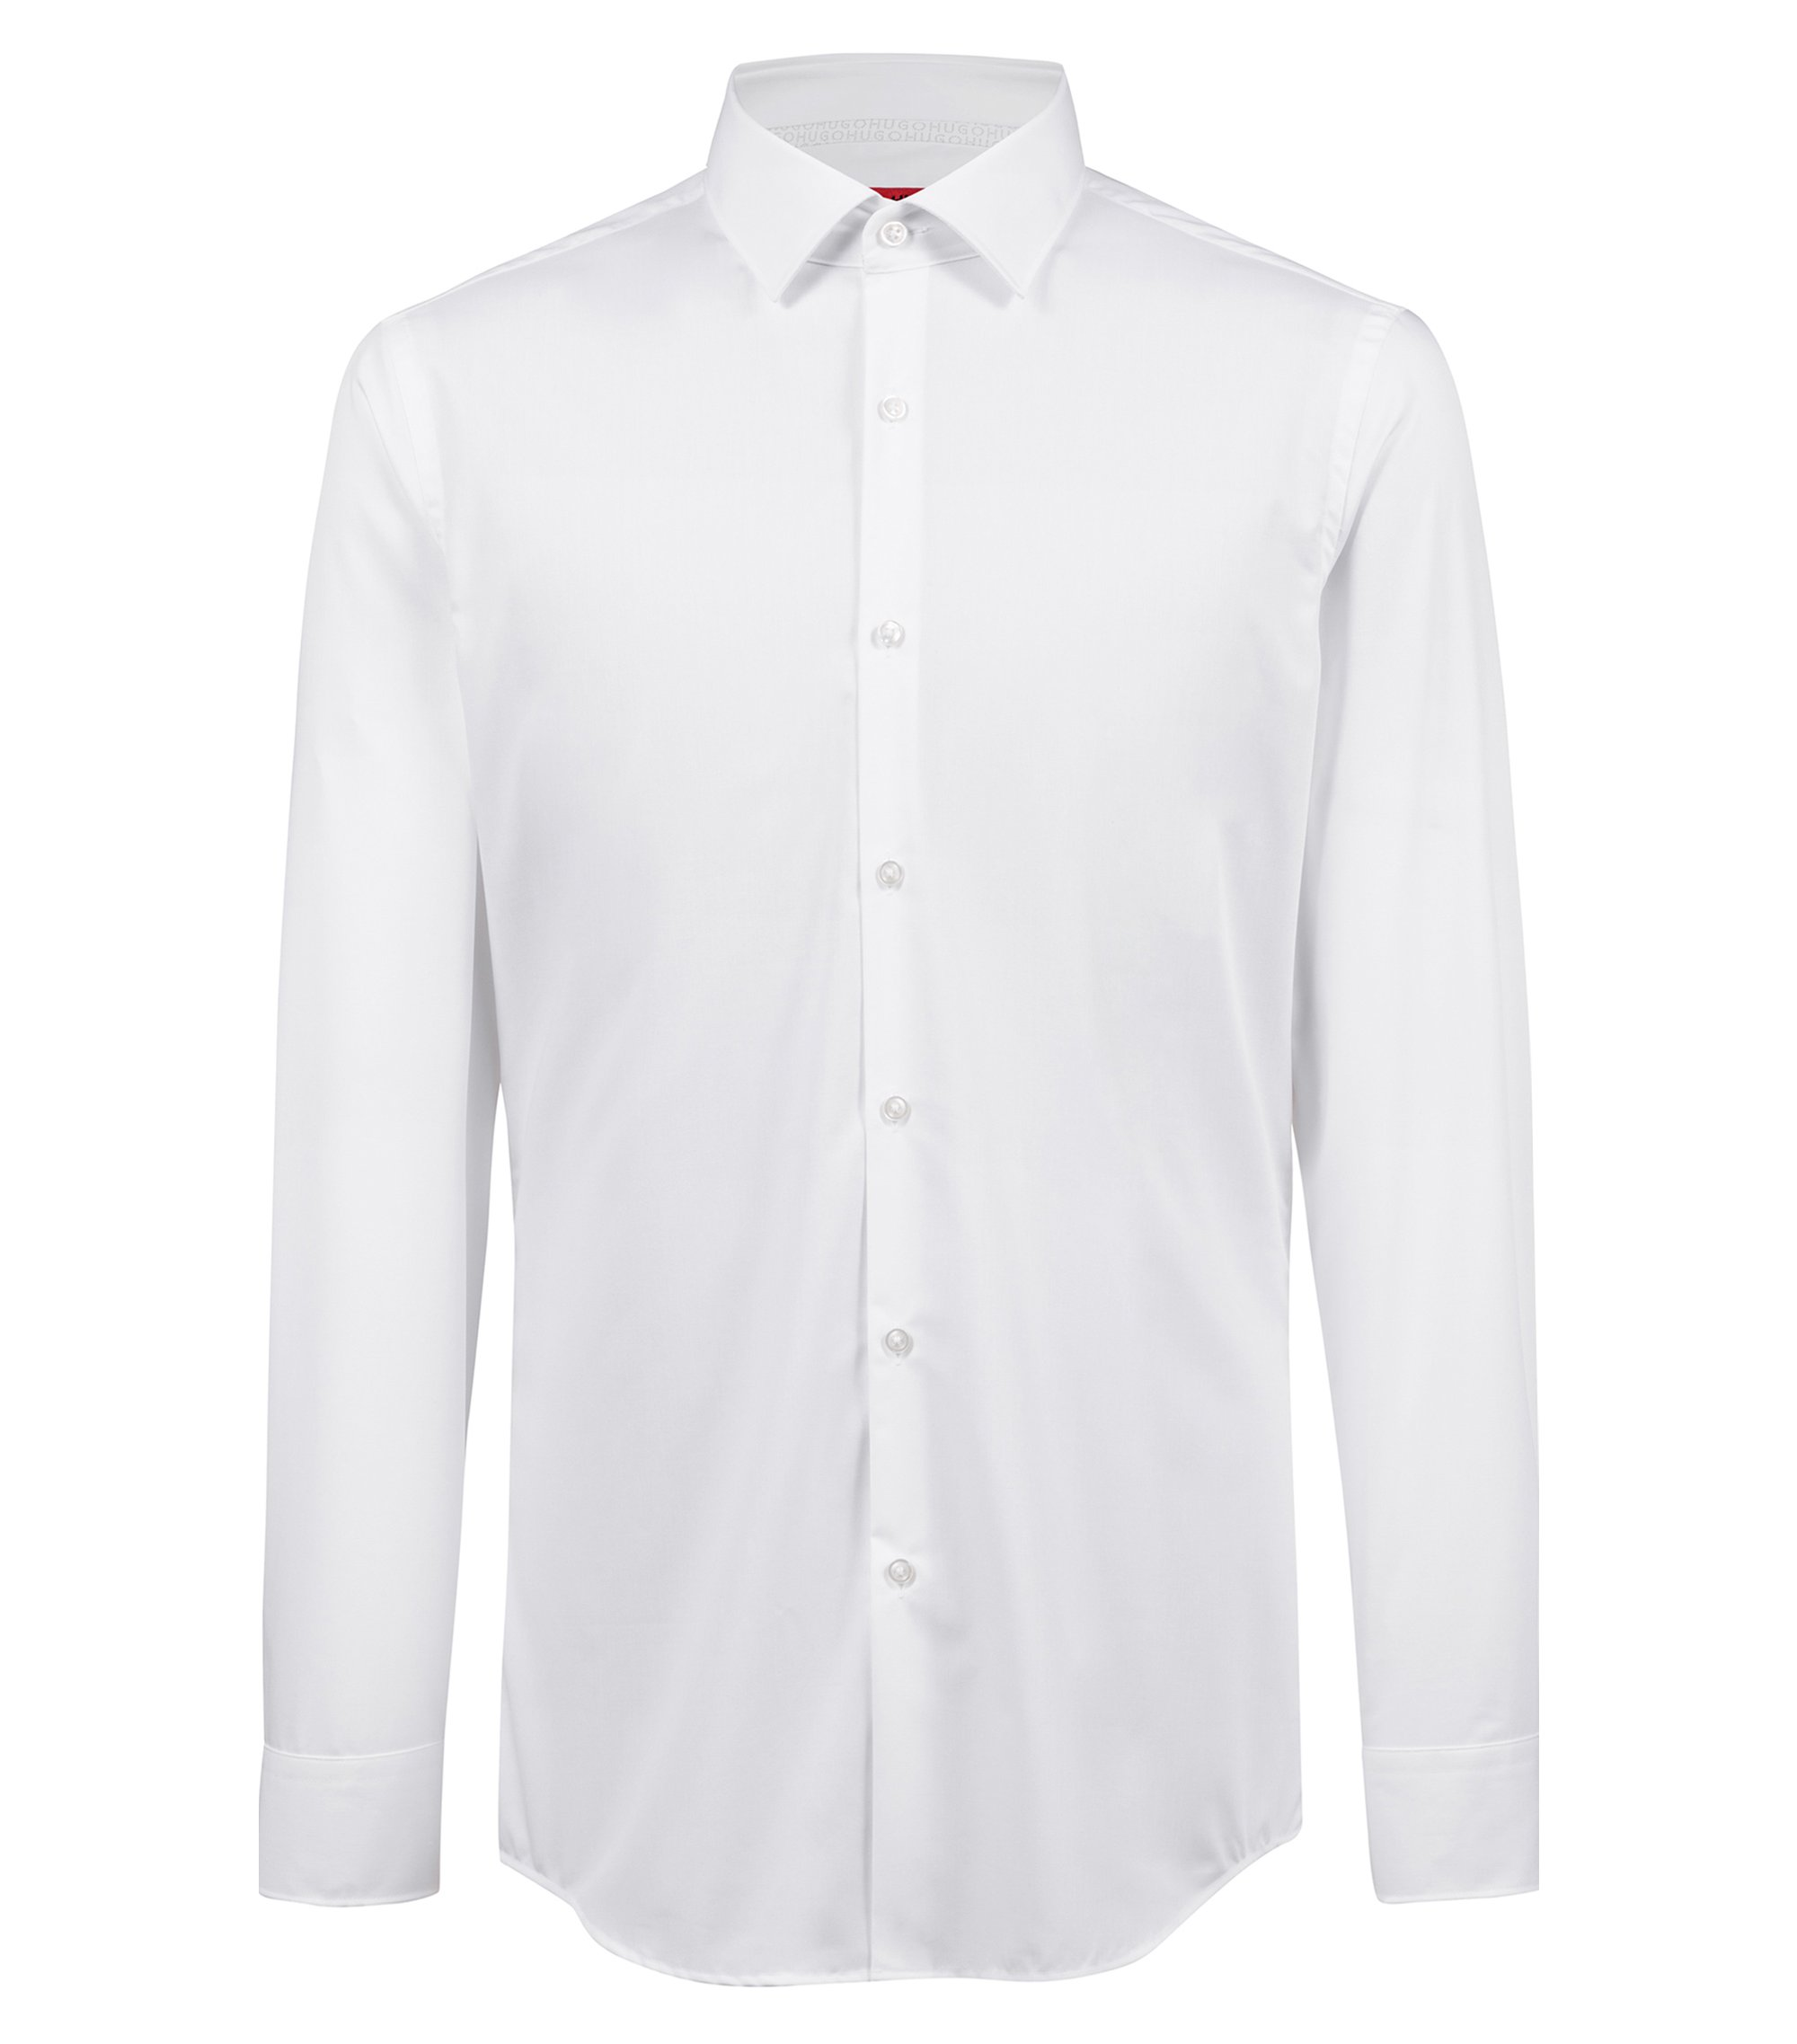 Slim-fit shirt in easy-iron cotton with internal logo trim, White